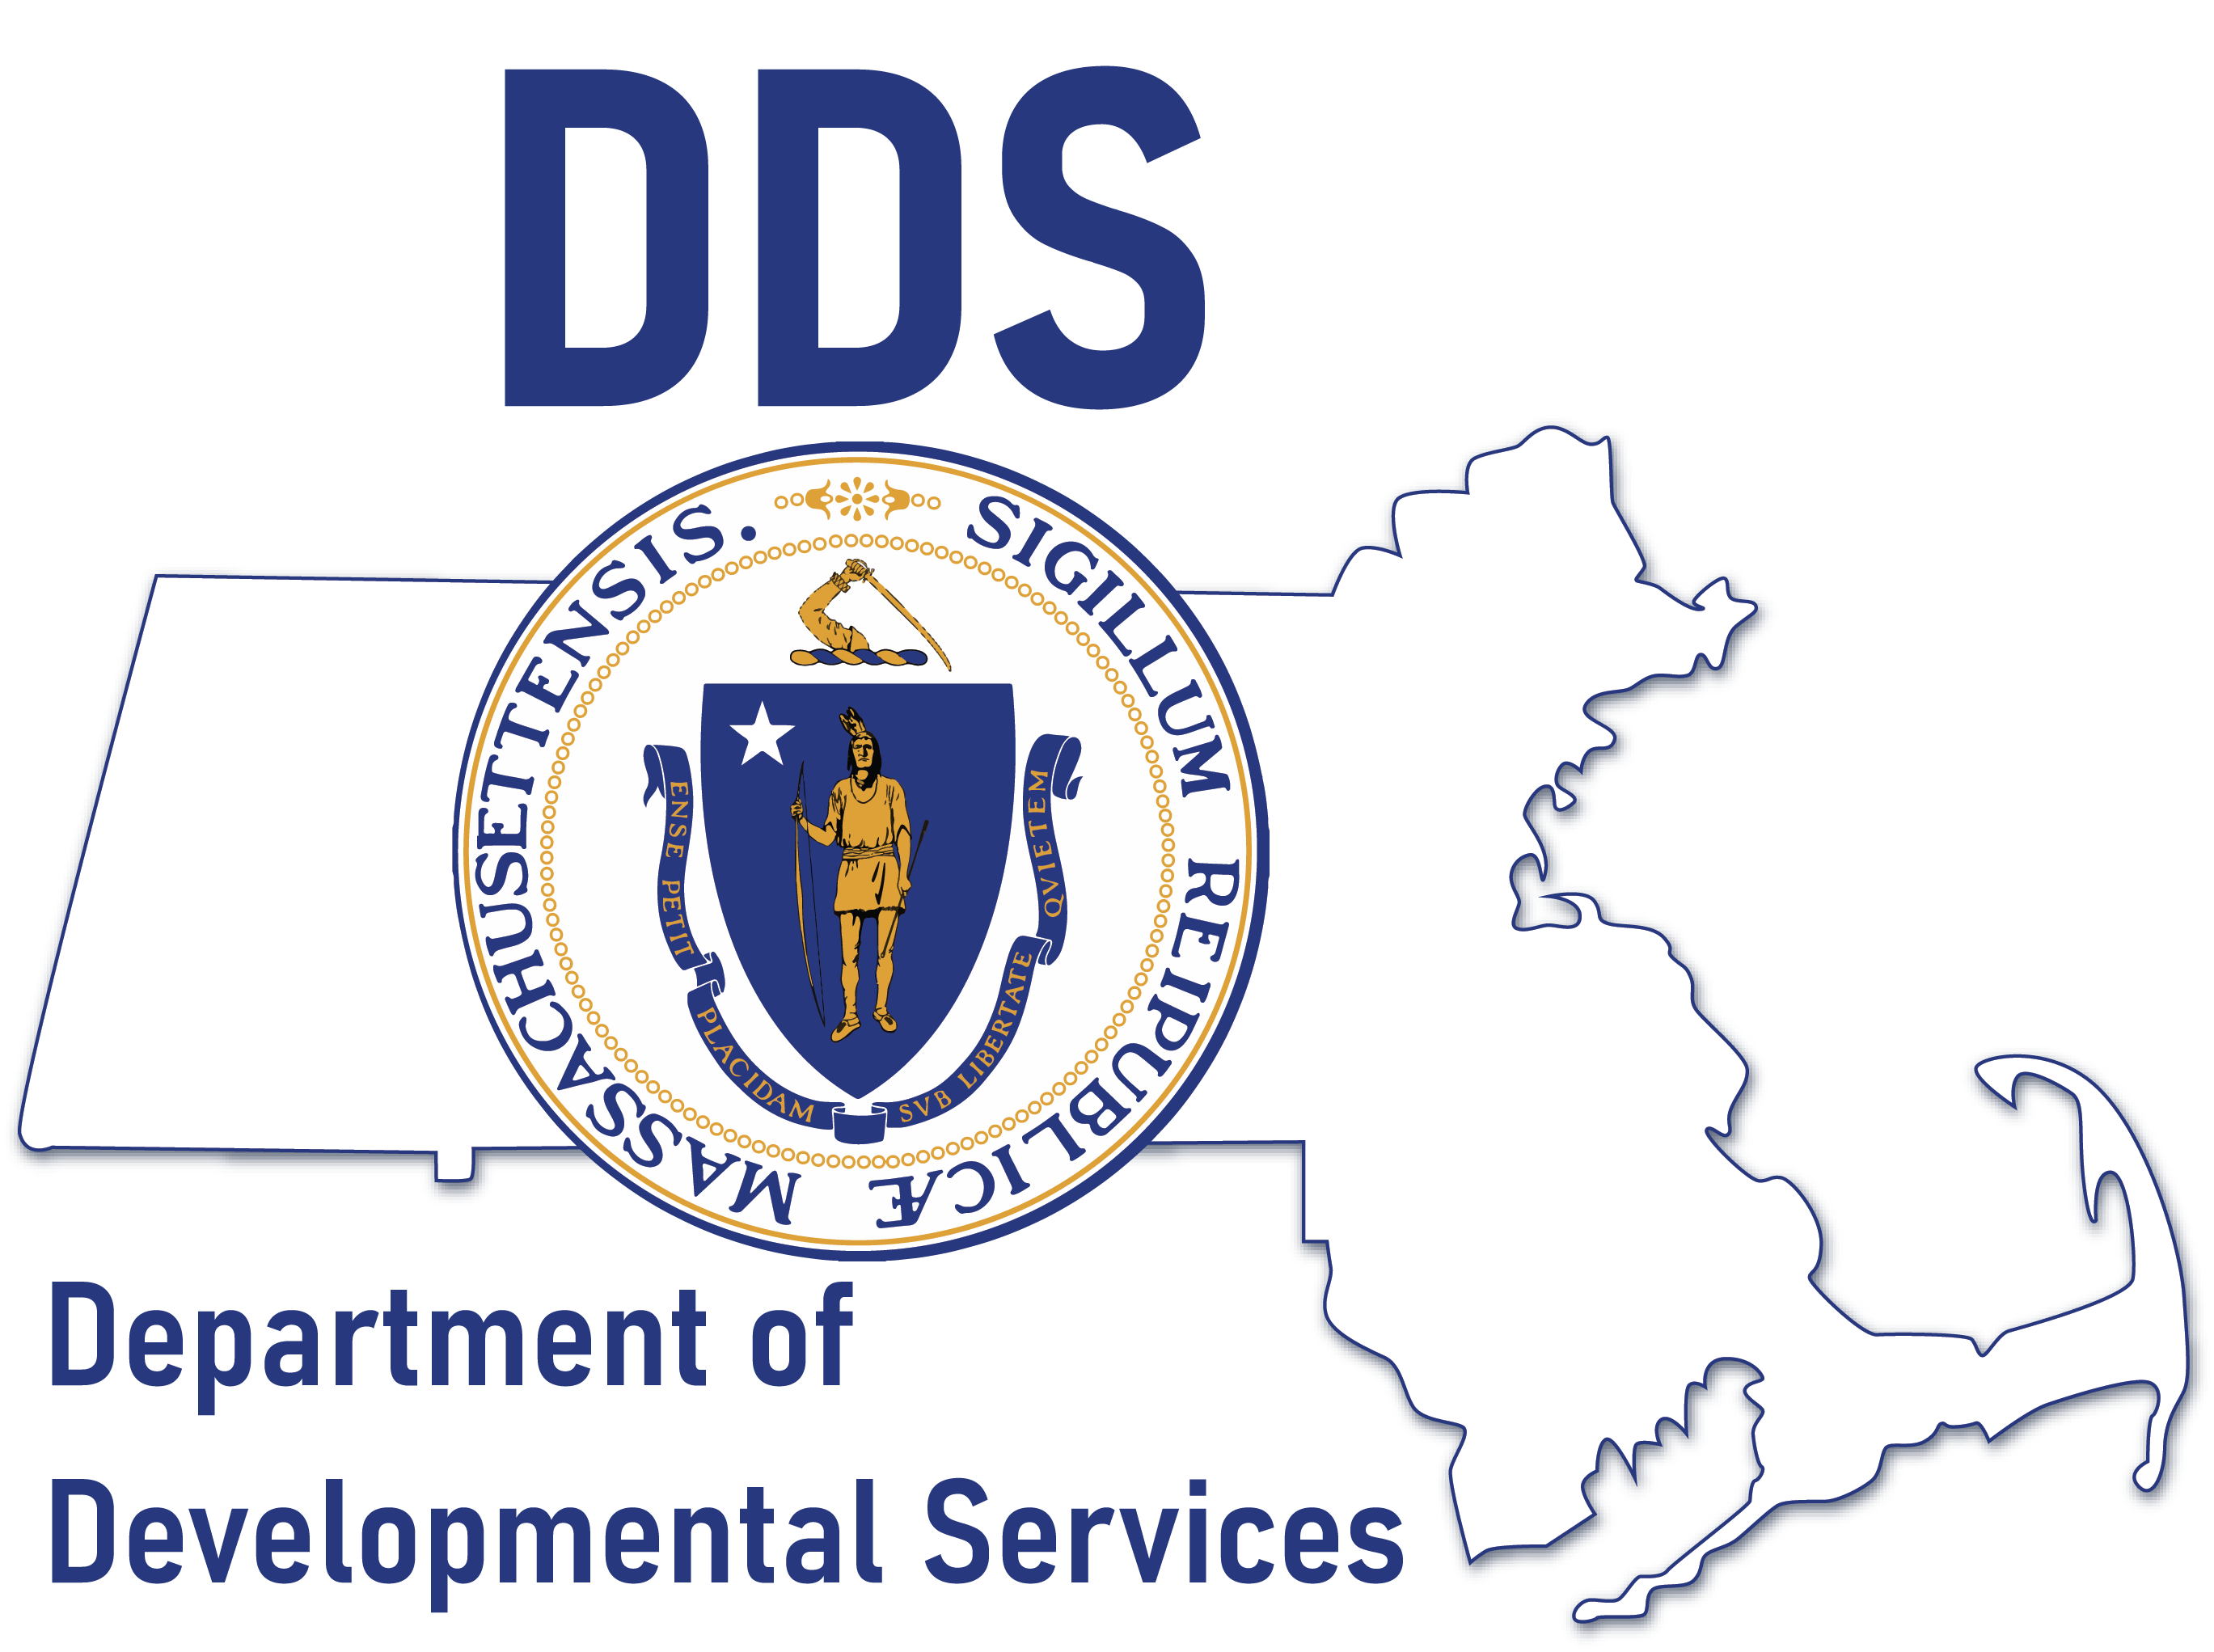 Logo of the Department of Developmental services. The state seal of Massachusetts over the shape of the state of Massachusetts. The initials DDS and text Department of Developmental services is shown above and below.